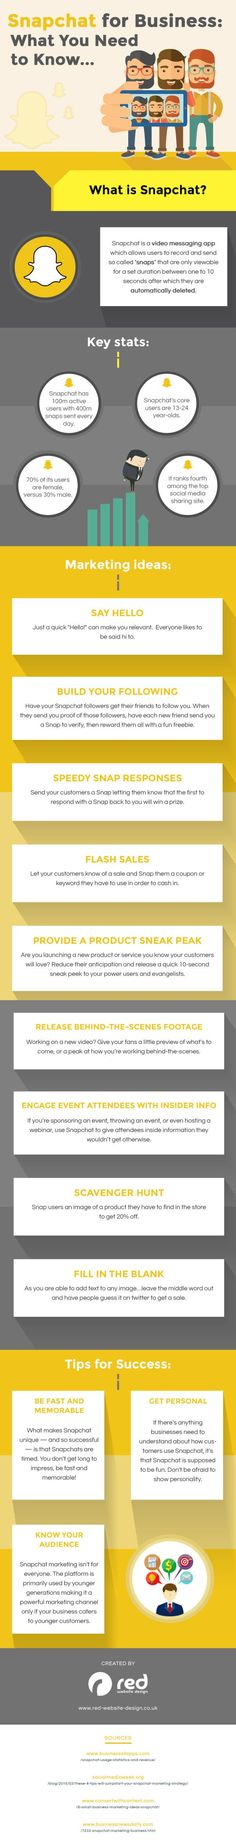 snapchat marketing for business and tips on ways to use it! (scheduled via http://www.tailwindapp.com?utm_source=pinterest&utm_medium=twpin&utm_content=post54398550&utm_campaign=scheduler_attribution)